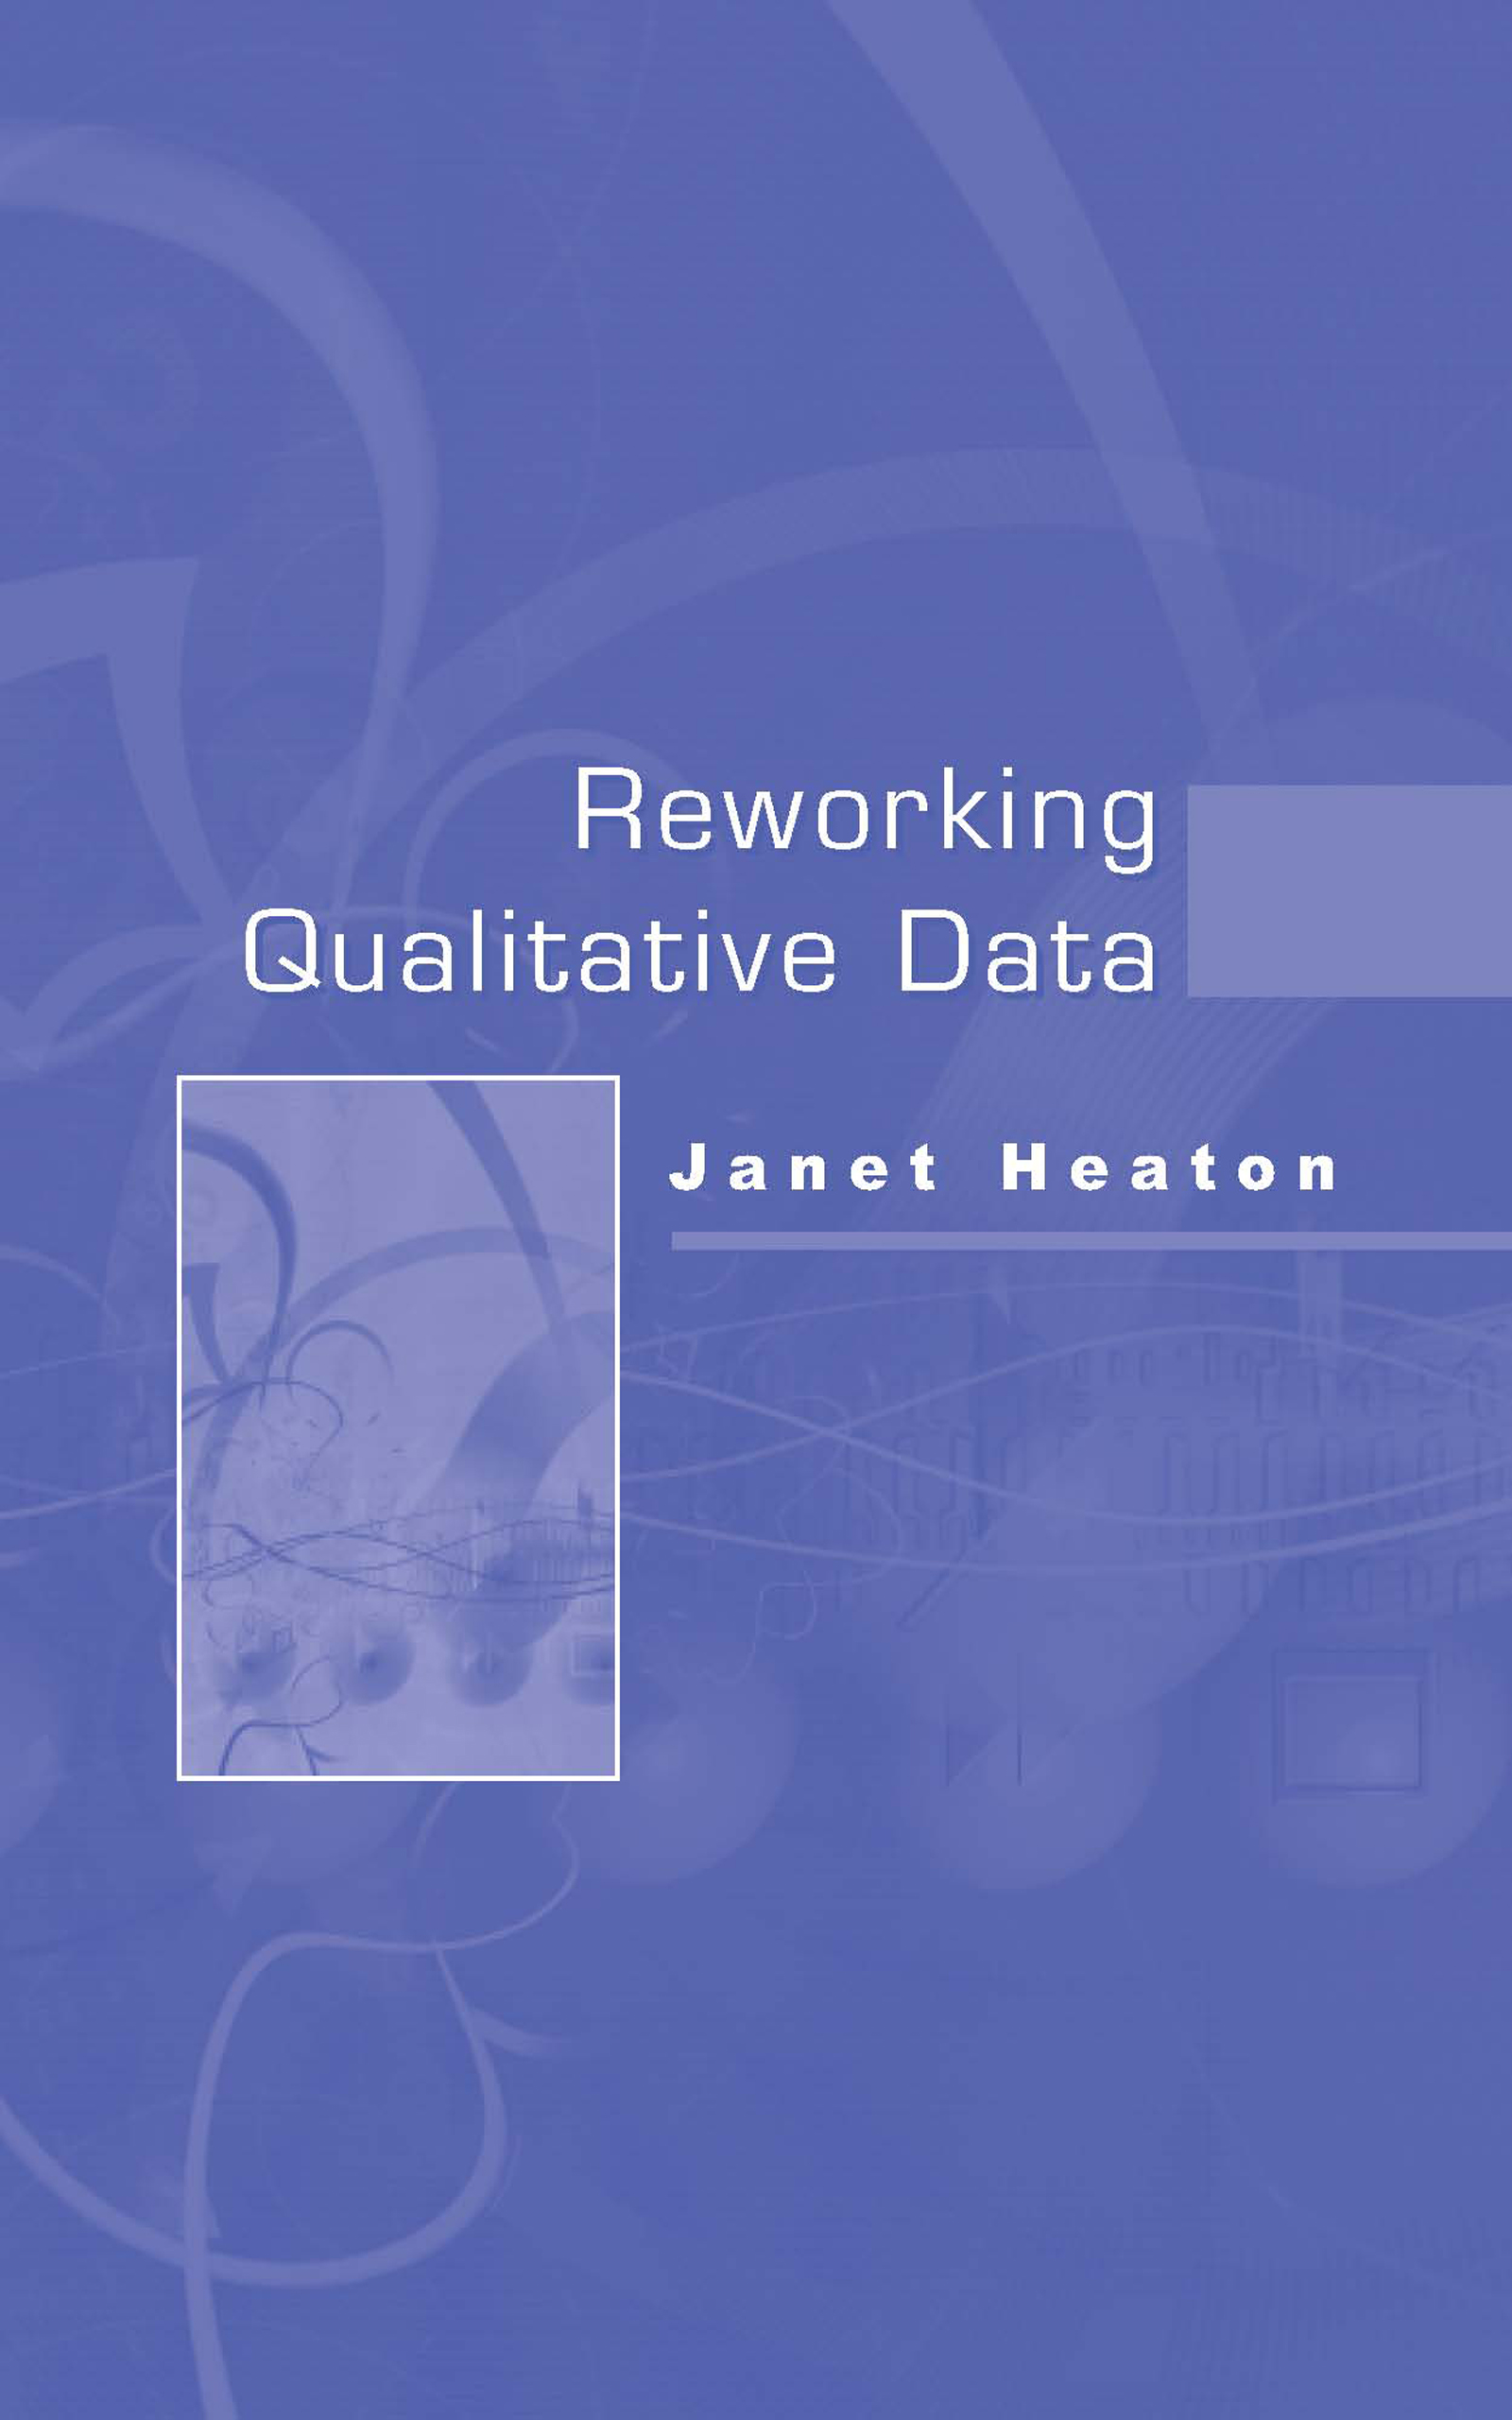 Download Ebook Reworking Qualitative Data by Janet Heaton Pdf